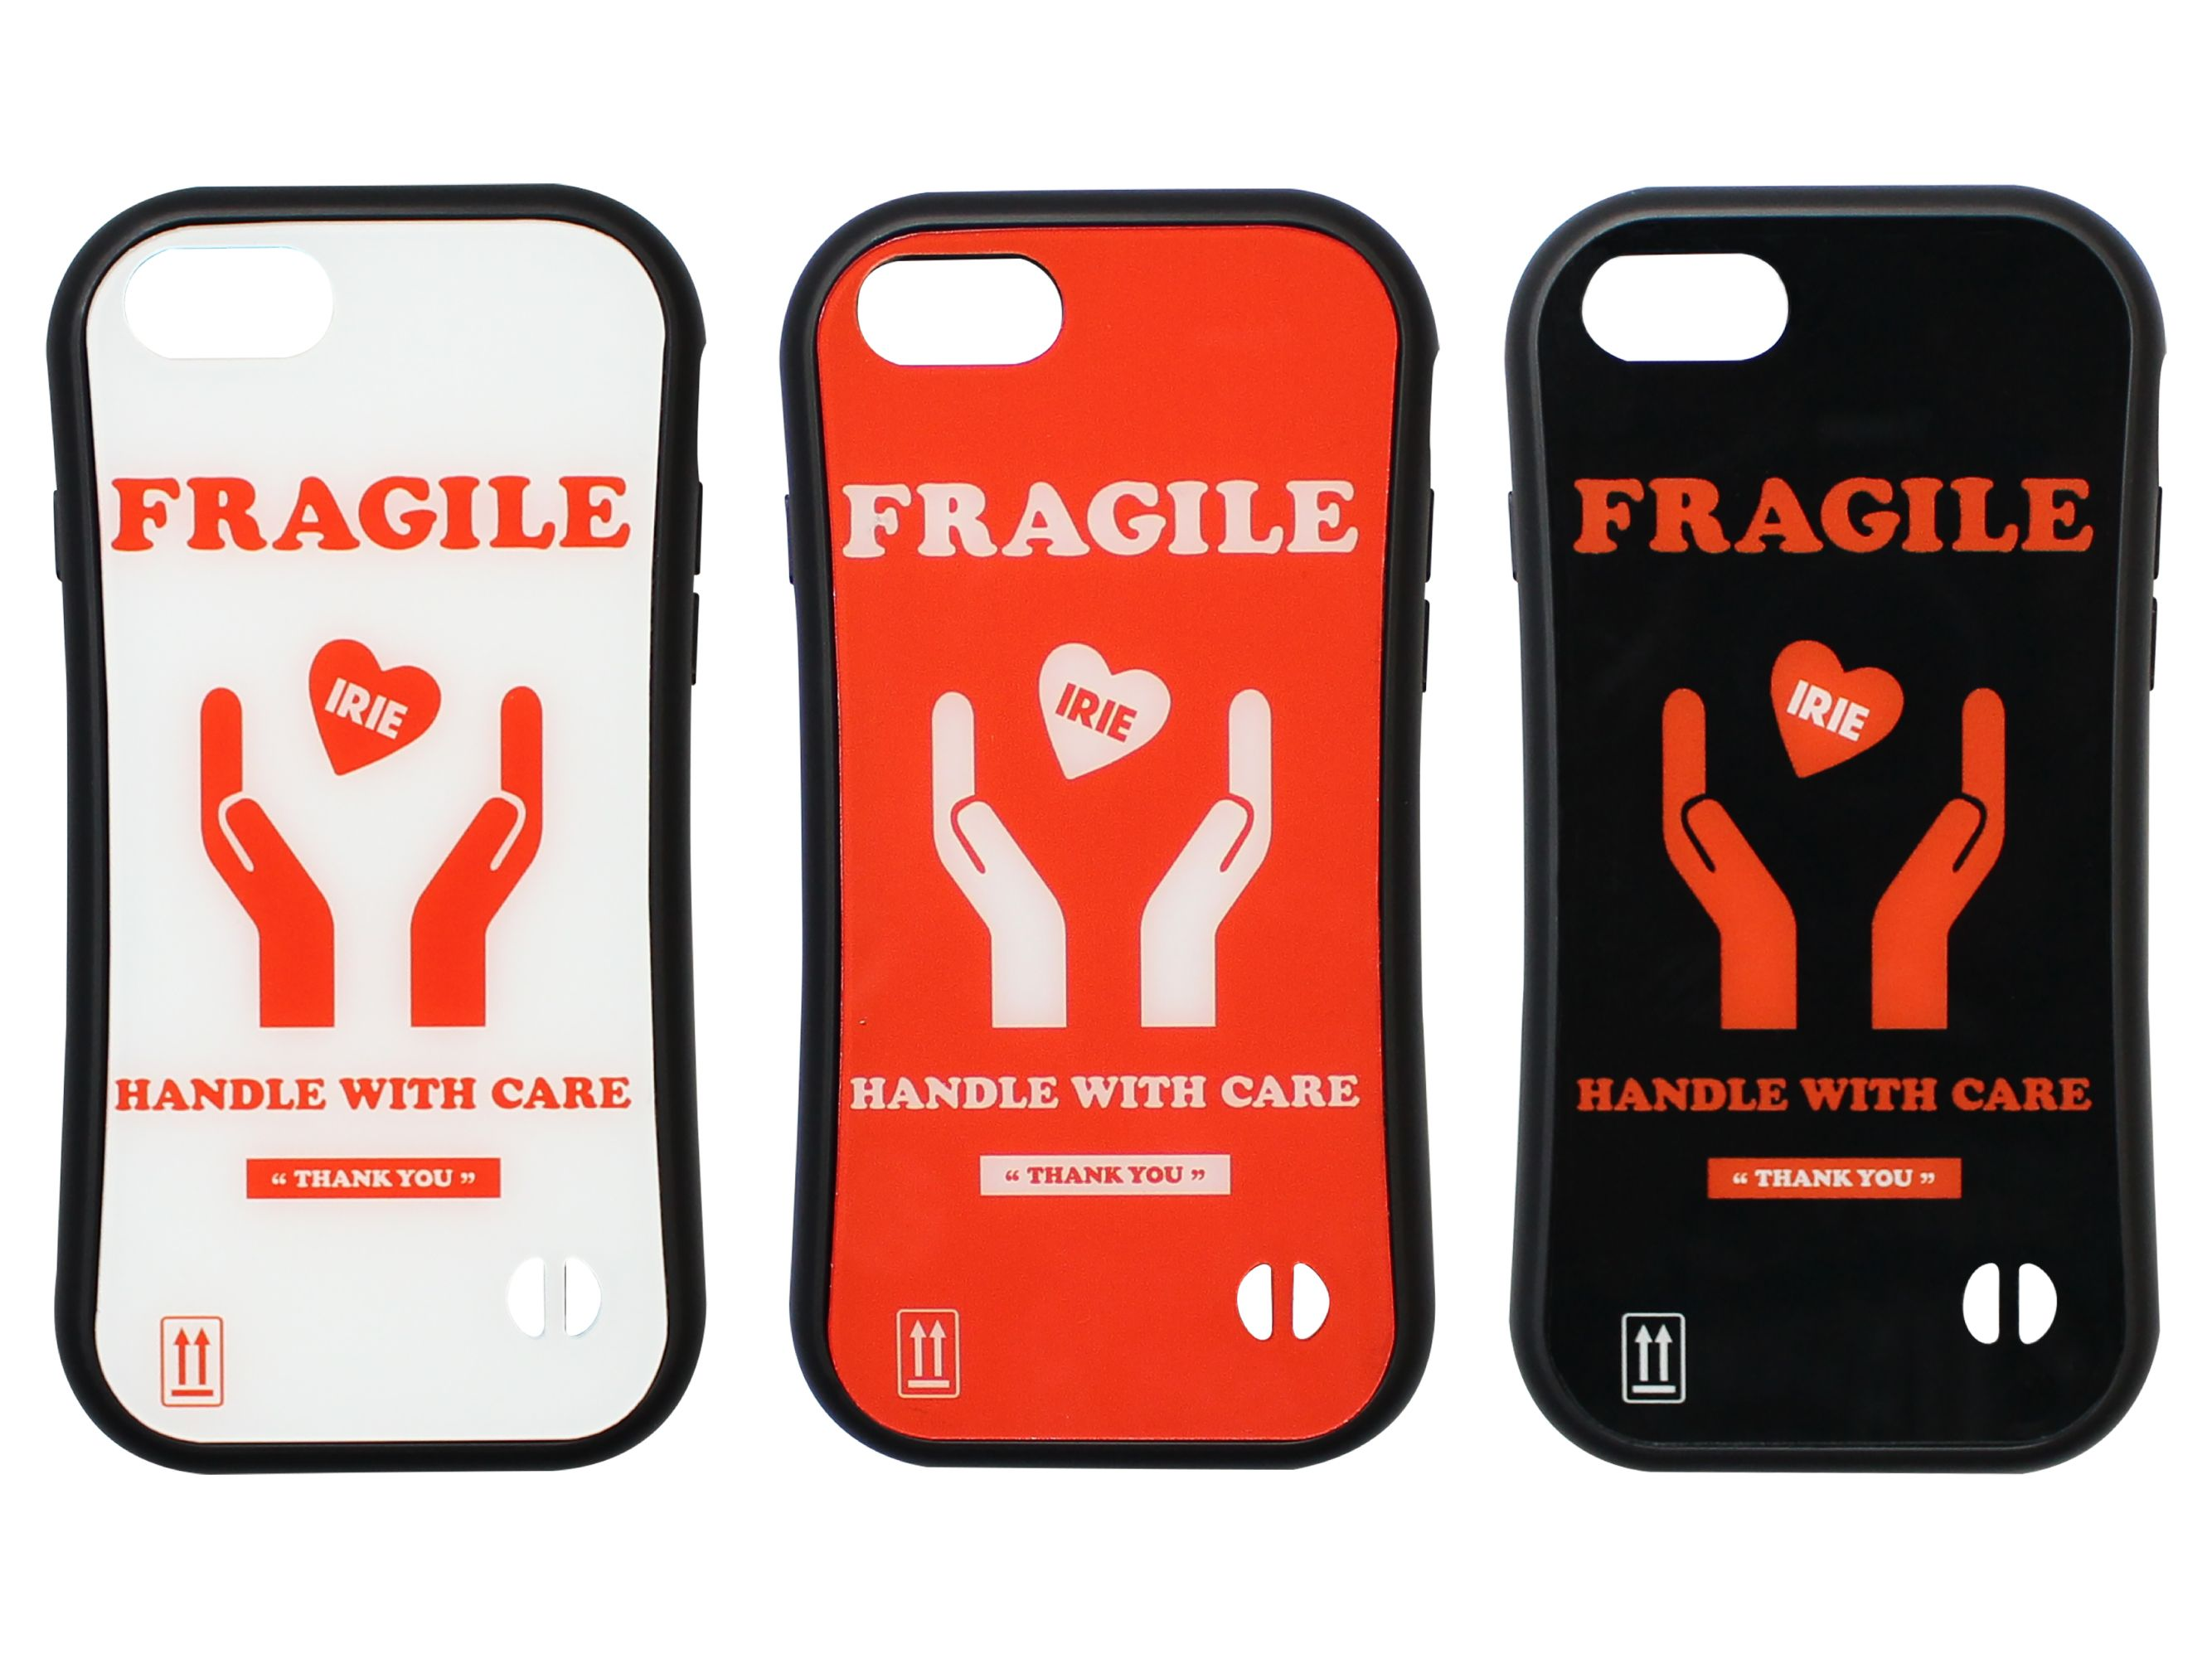 【70%OFF】IRIE FRAGILE iPhone CASE -IRIEby irielife-